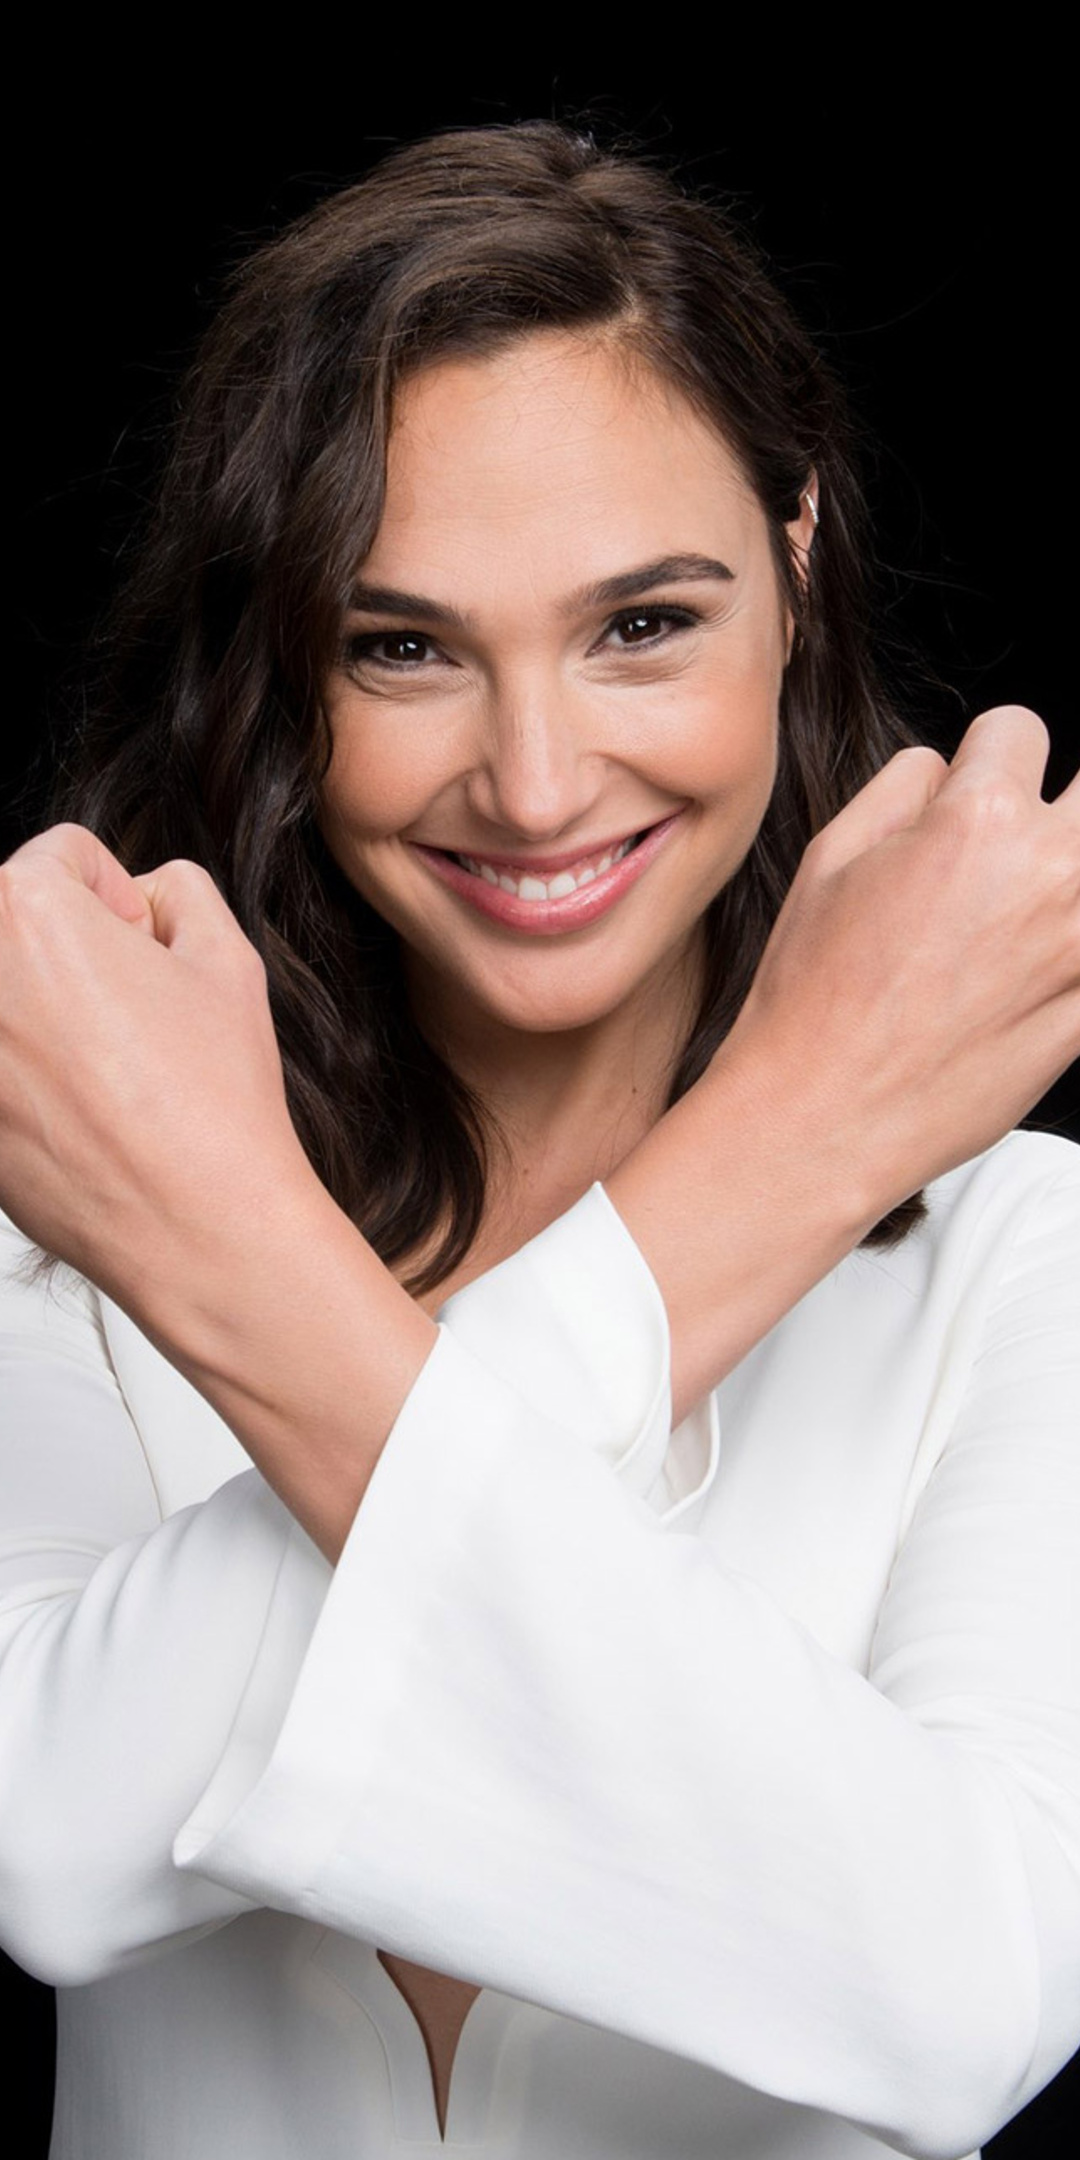 gal-gadot-2017-latest-nm.jpg